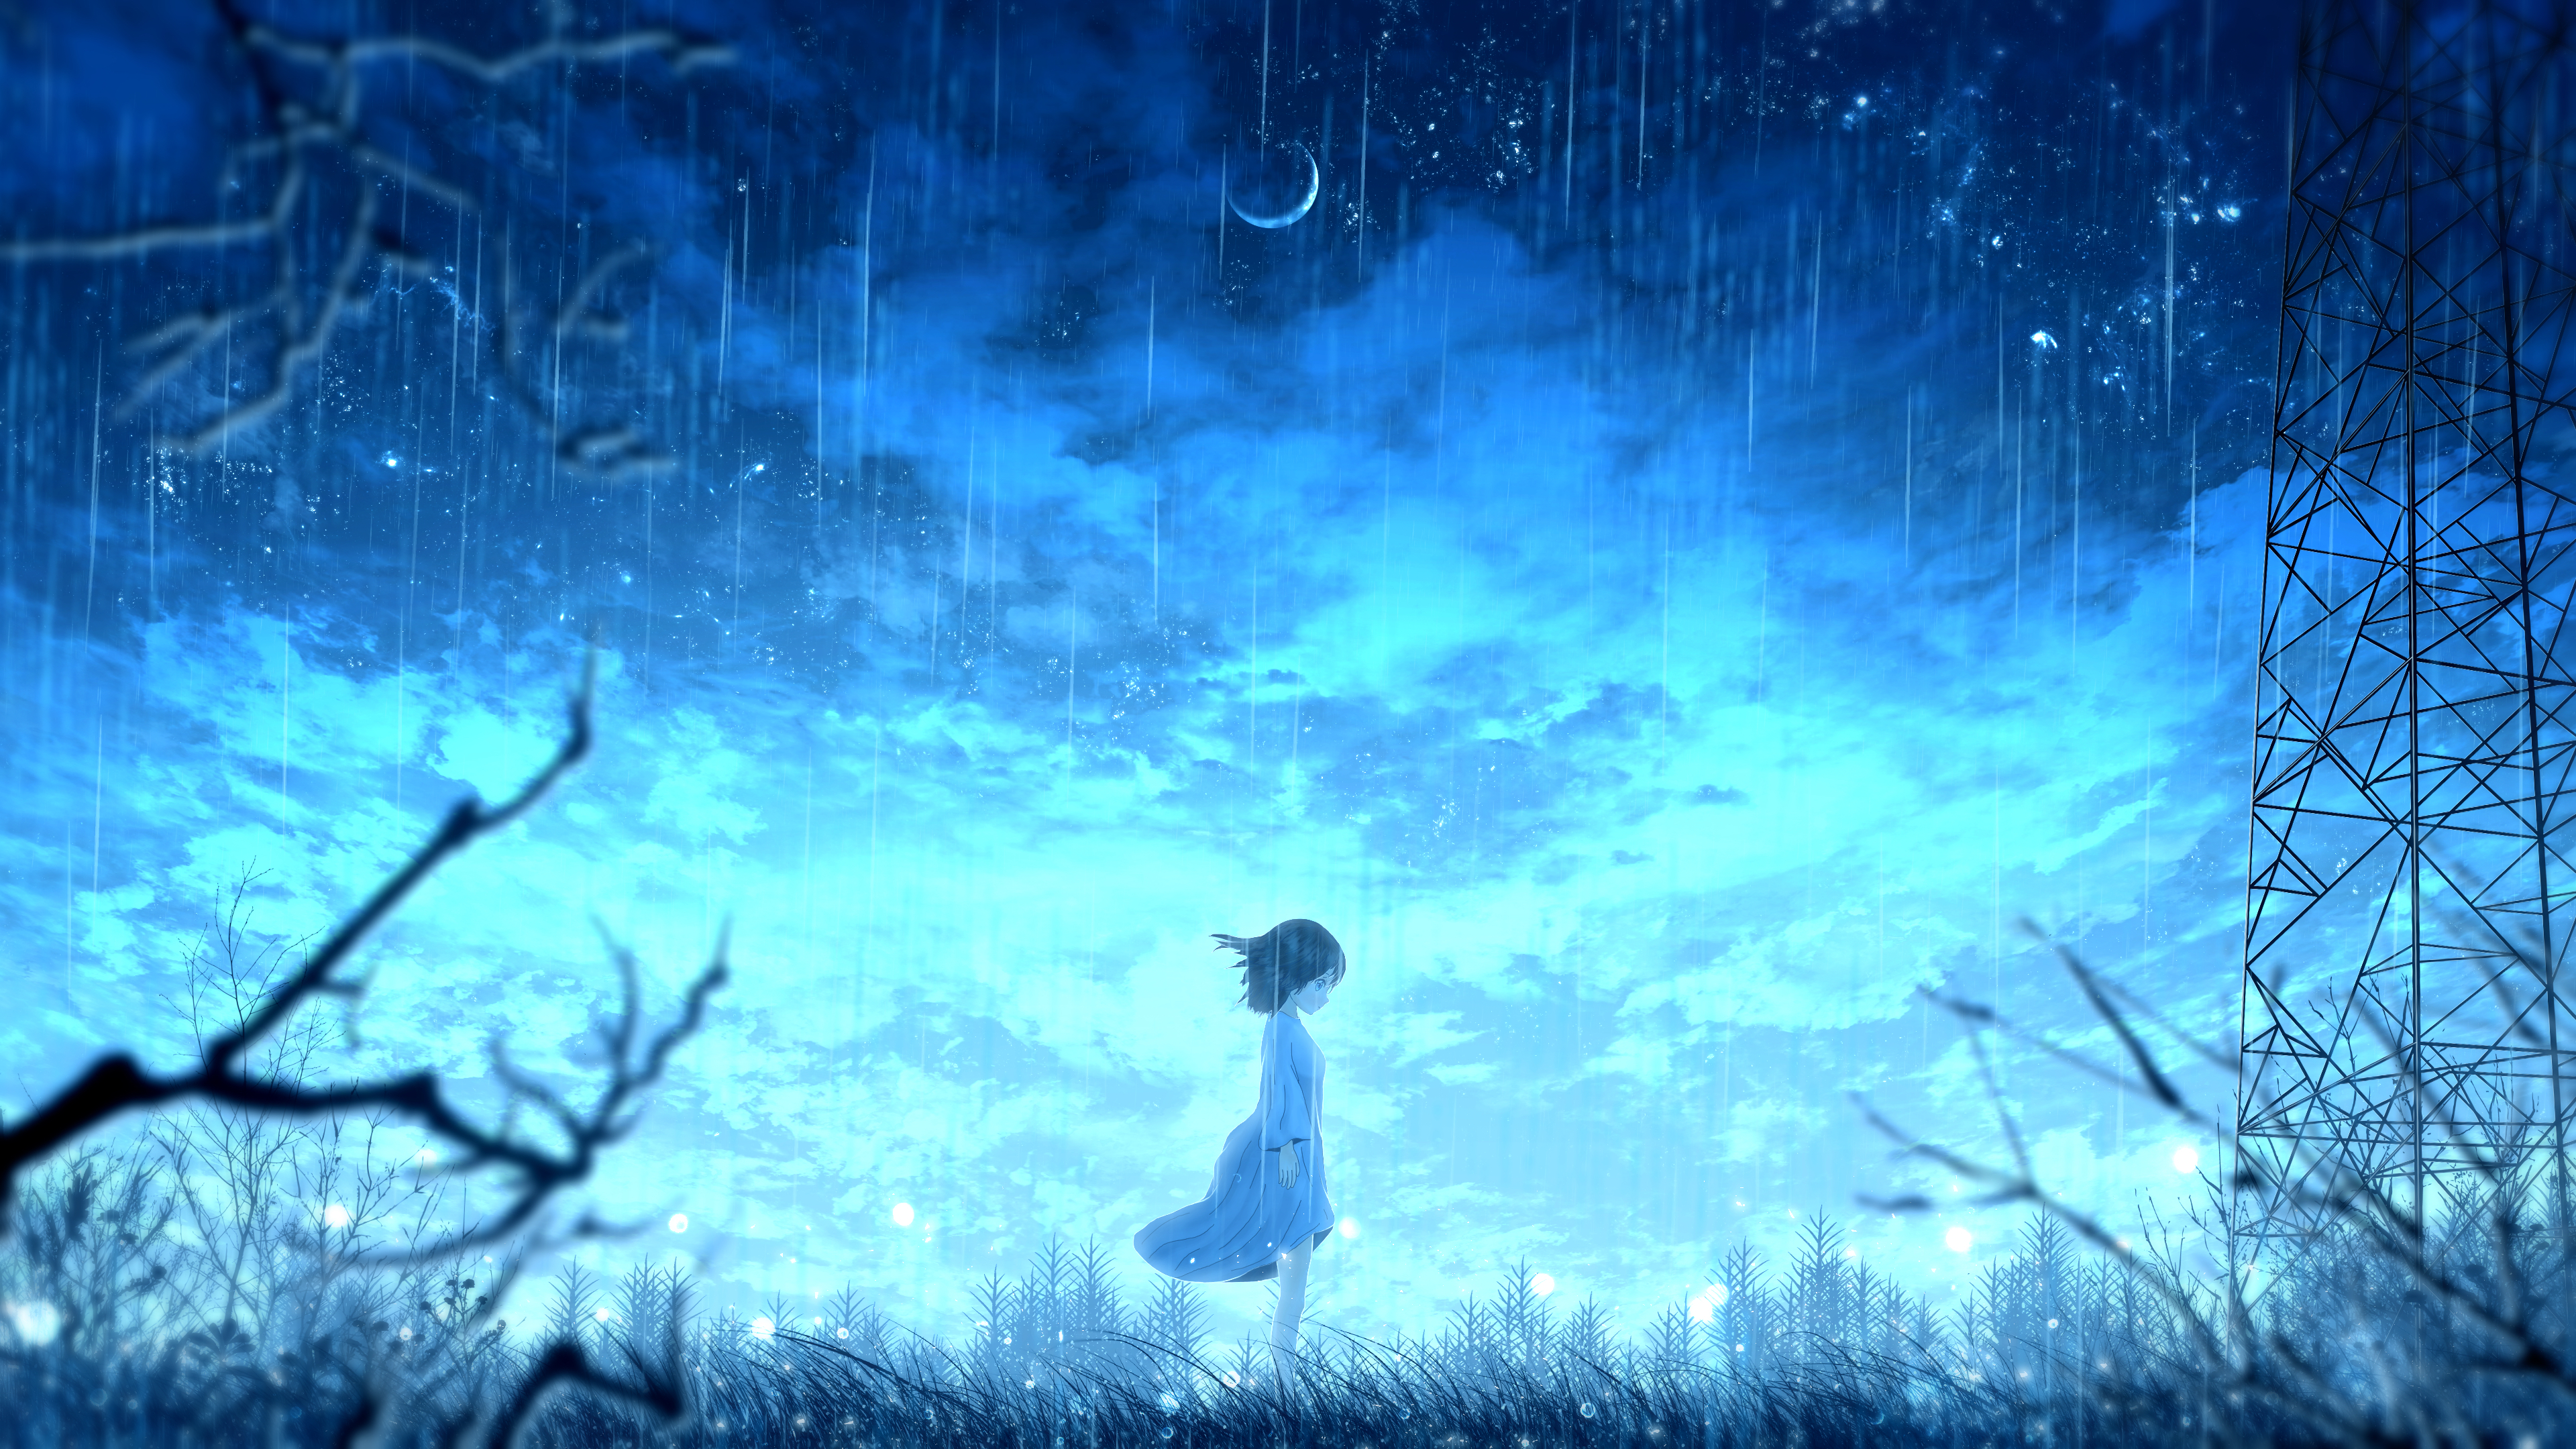 Anime Girl Night Rain 4k Hd Anime 4k Wallpapers Images Backgrounds Photos And Pictures